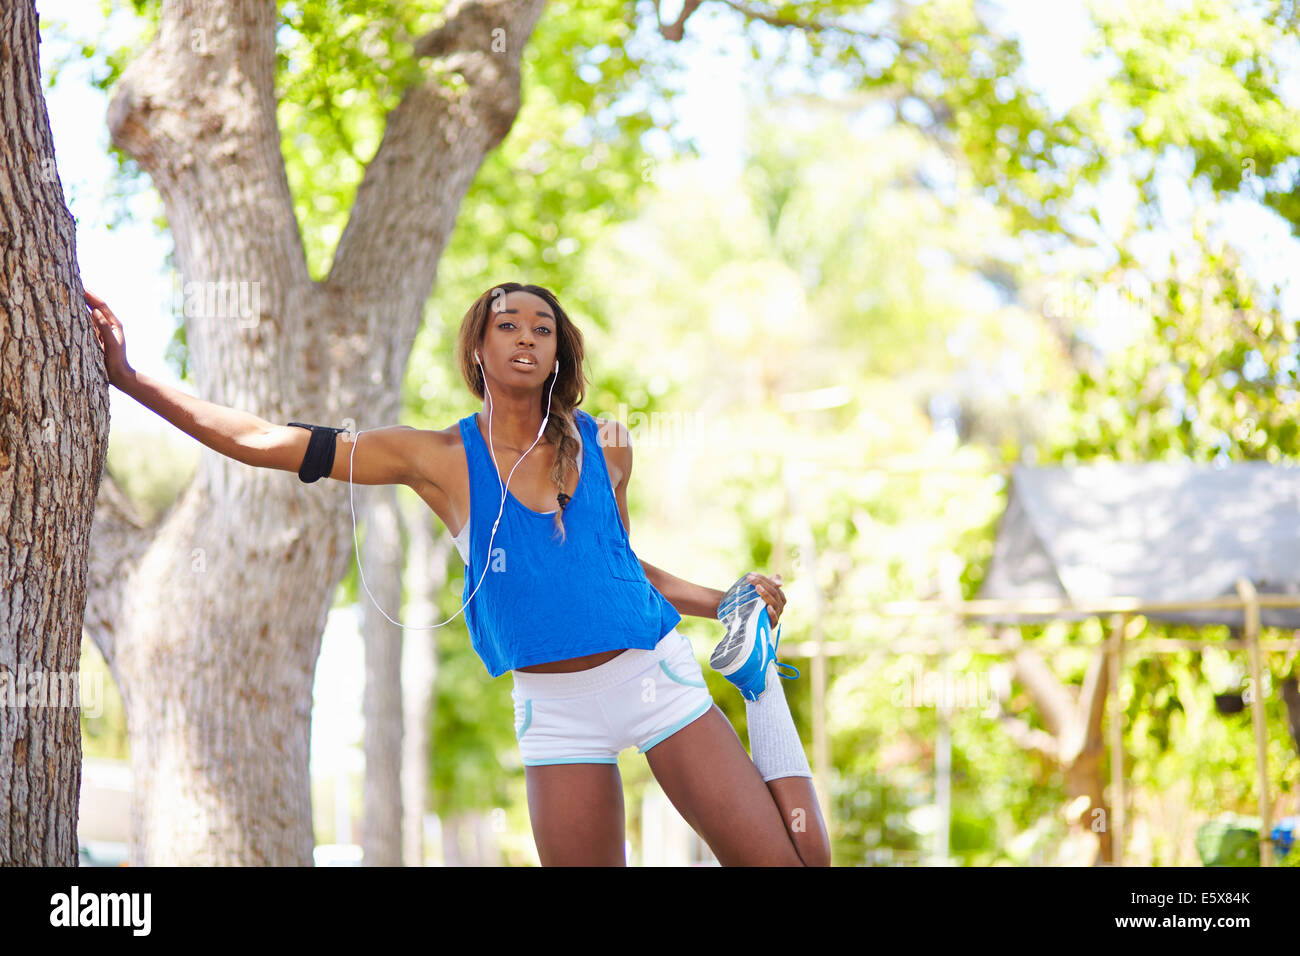 Young female runner warming up in park - Stock Image